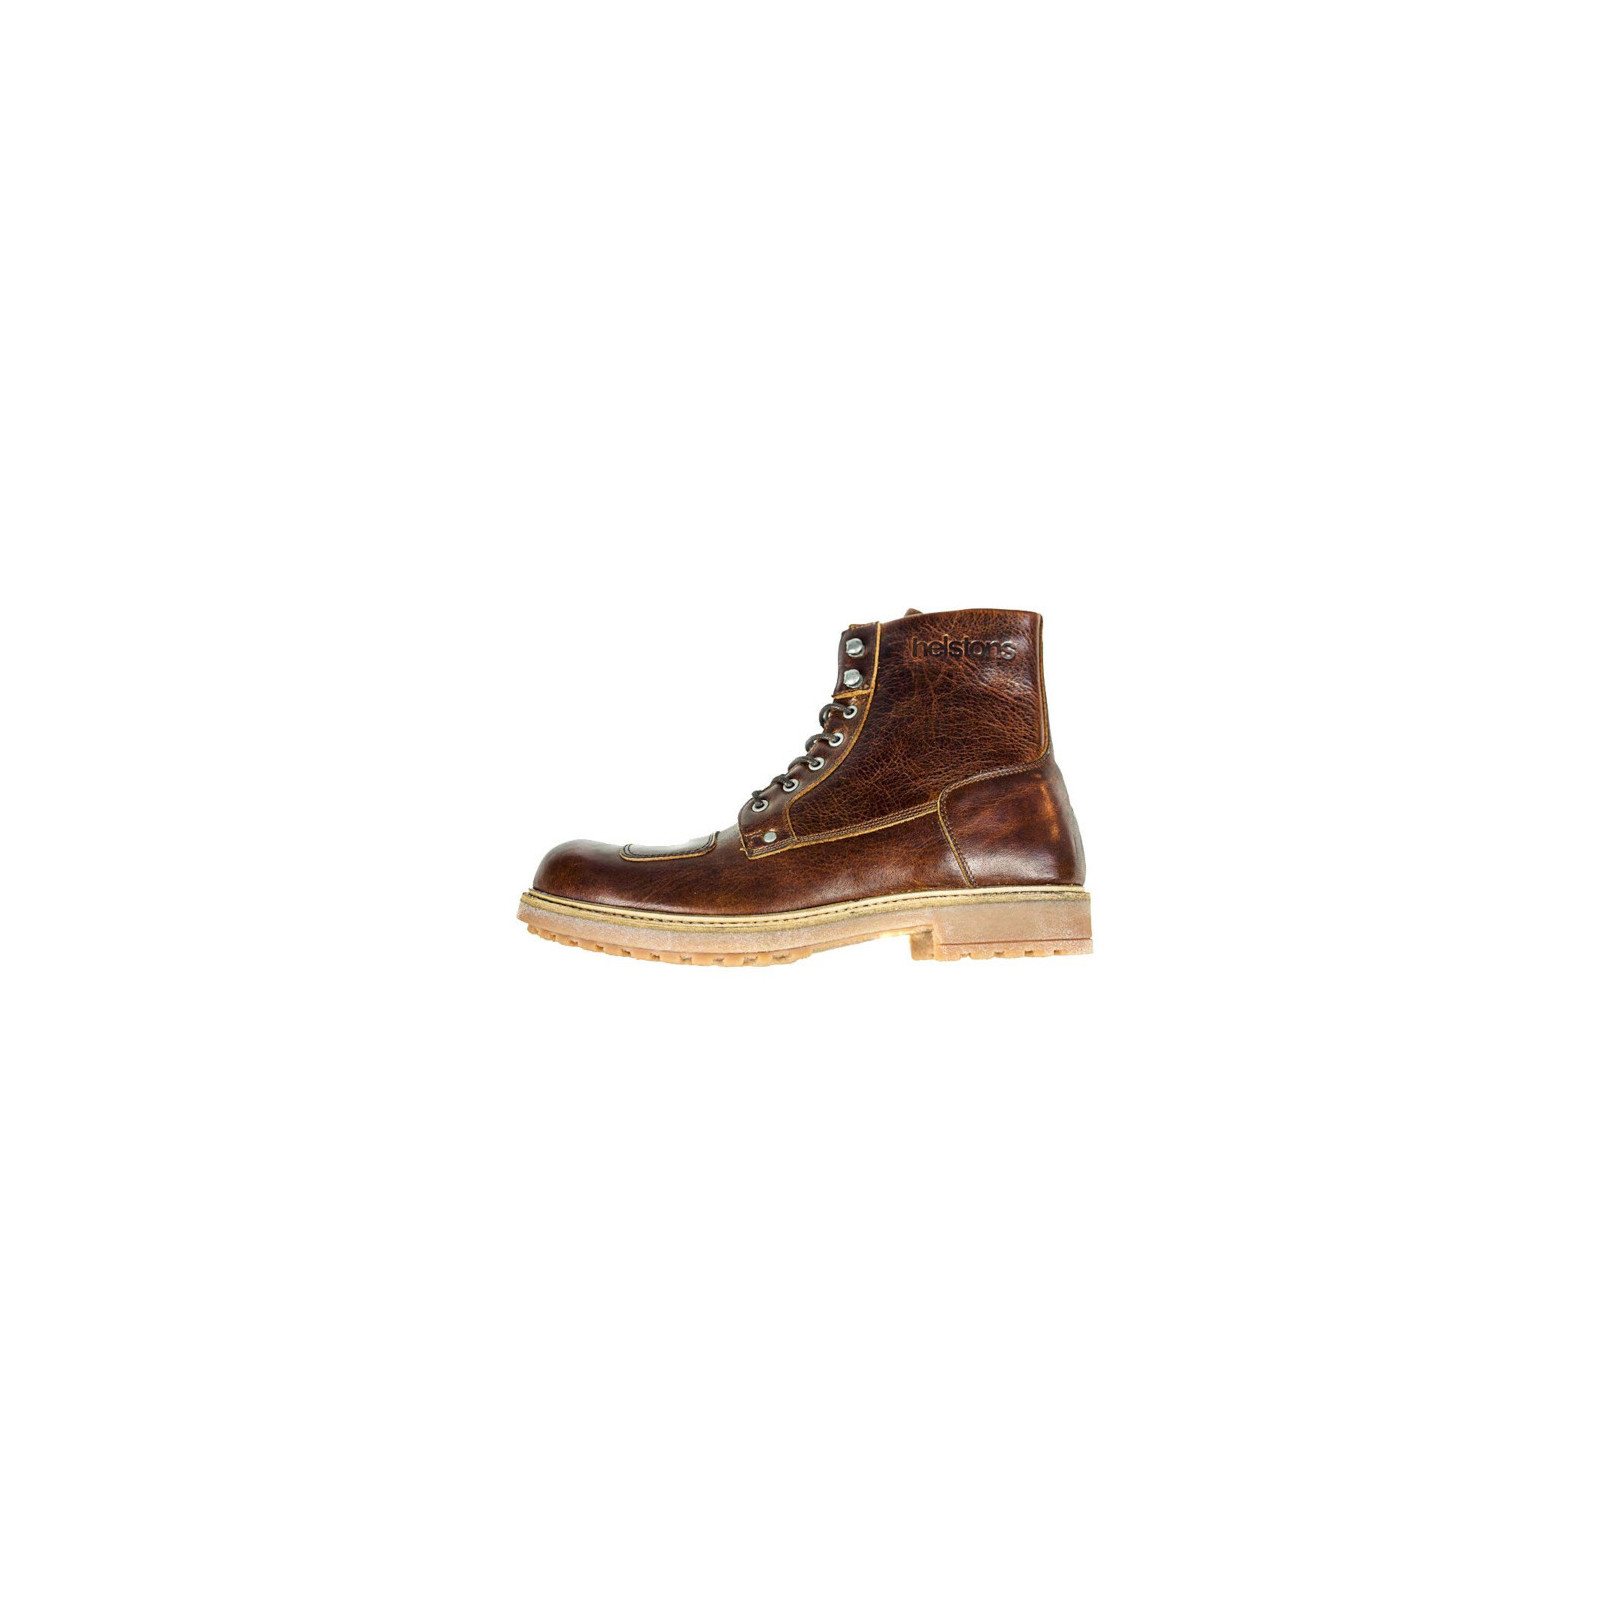 Chaussures Helstons Mountains Cuir Aniline Marron